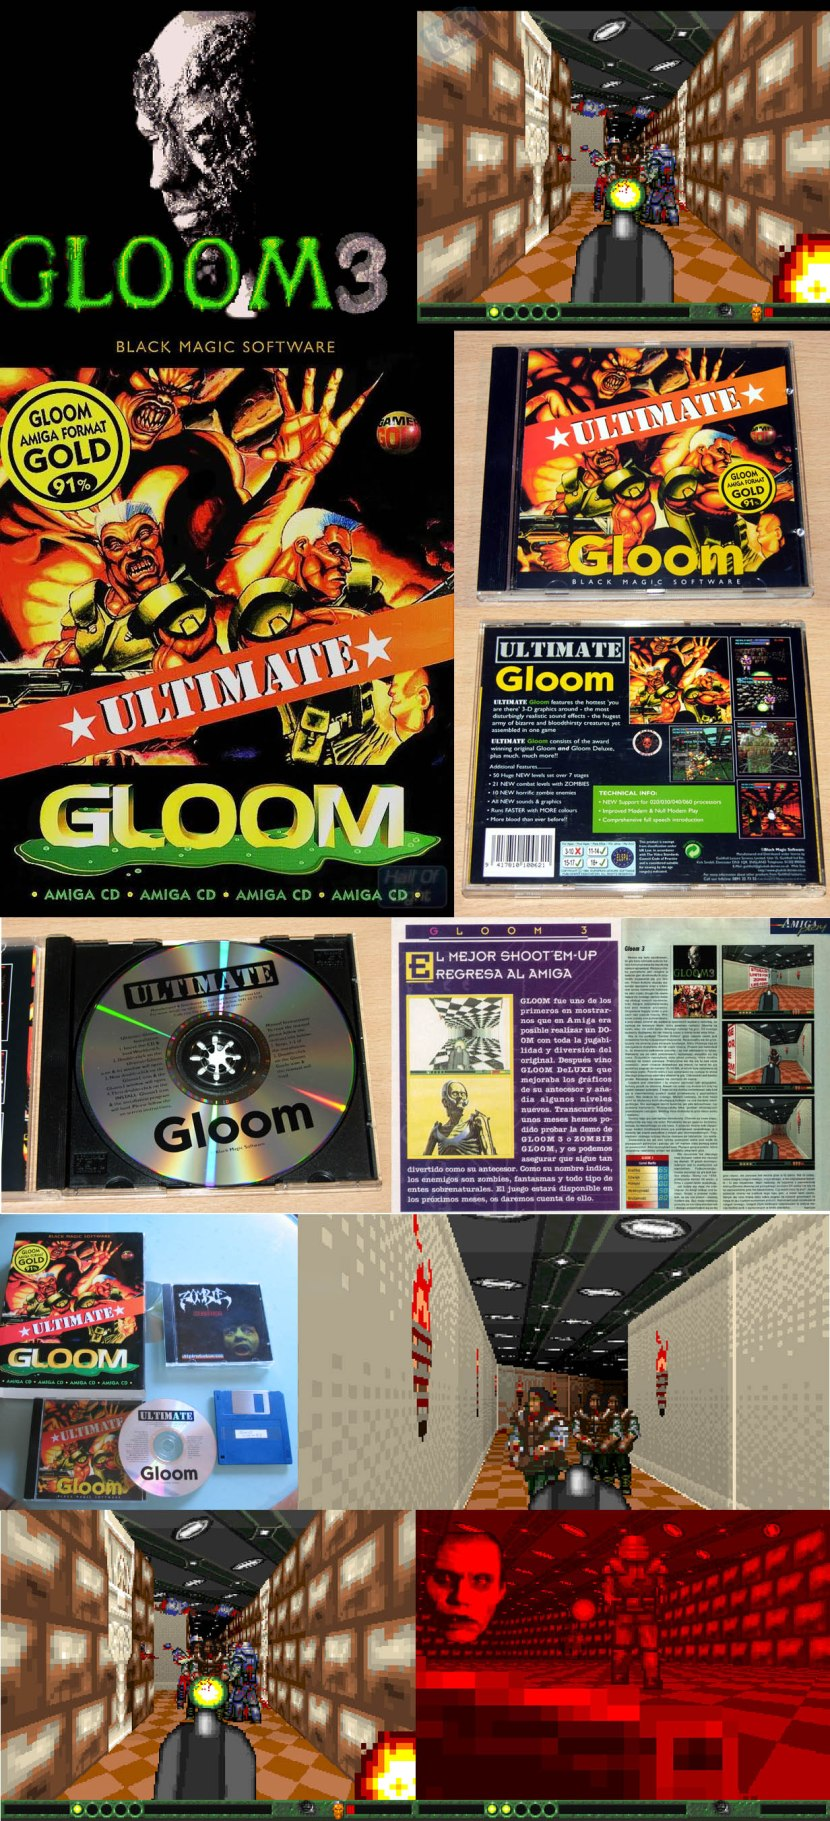 ultimateGloom copy